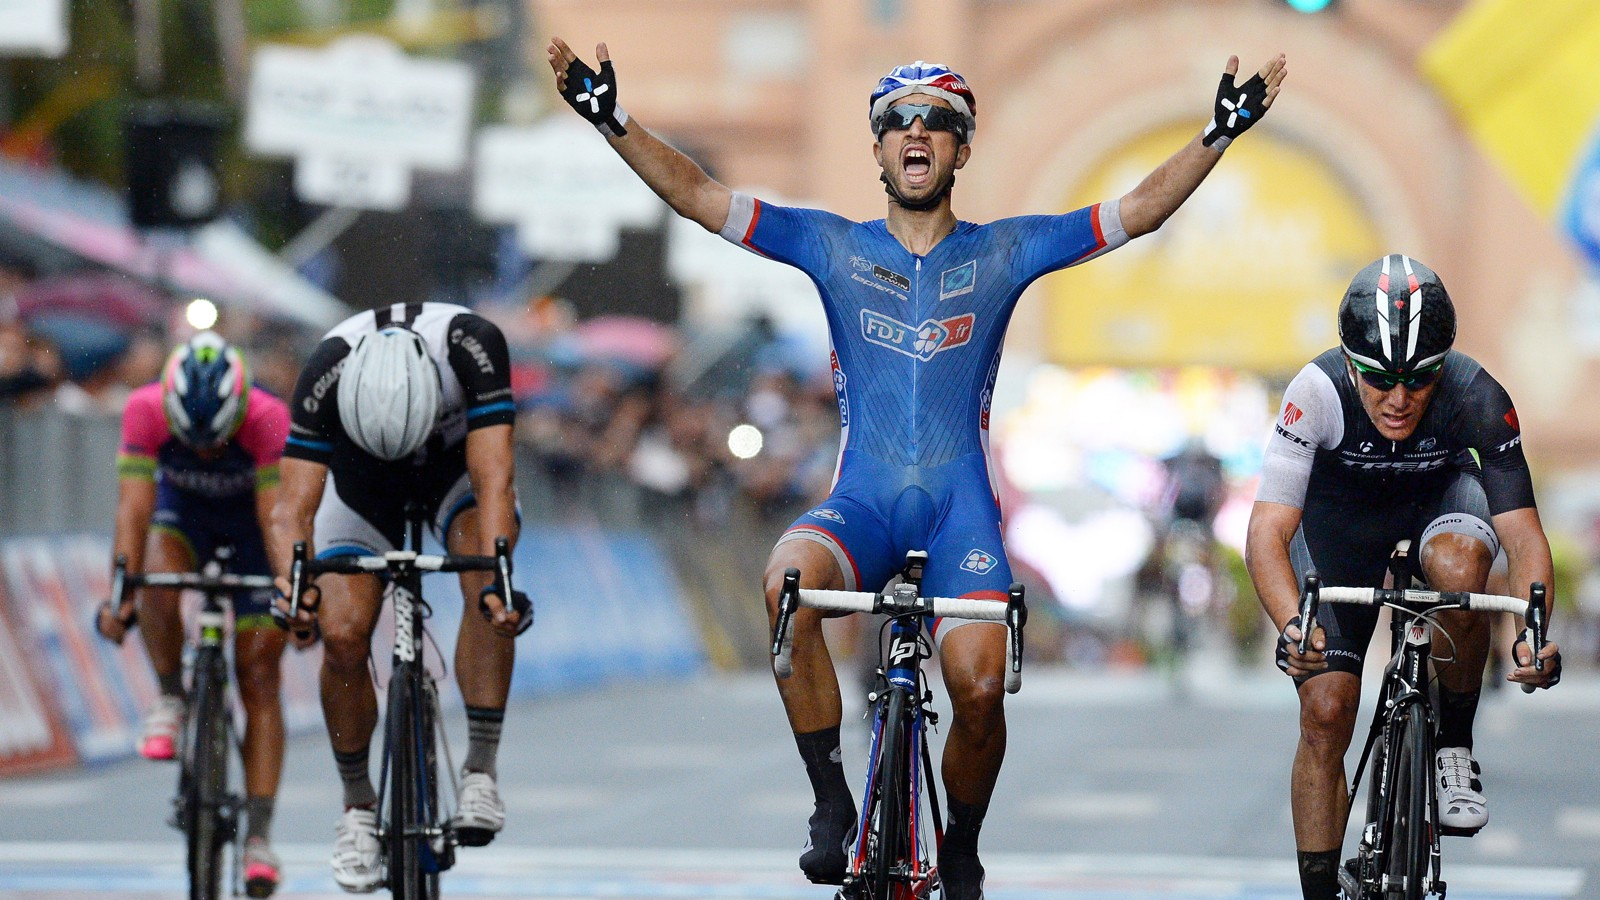 Nacer Bouhanni won stage 4 of the 2014 Giro d'Italia